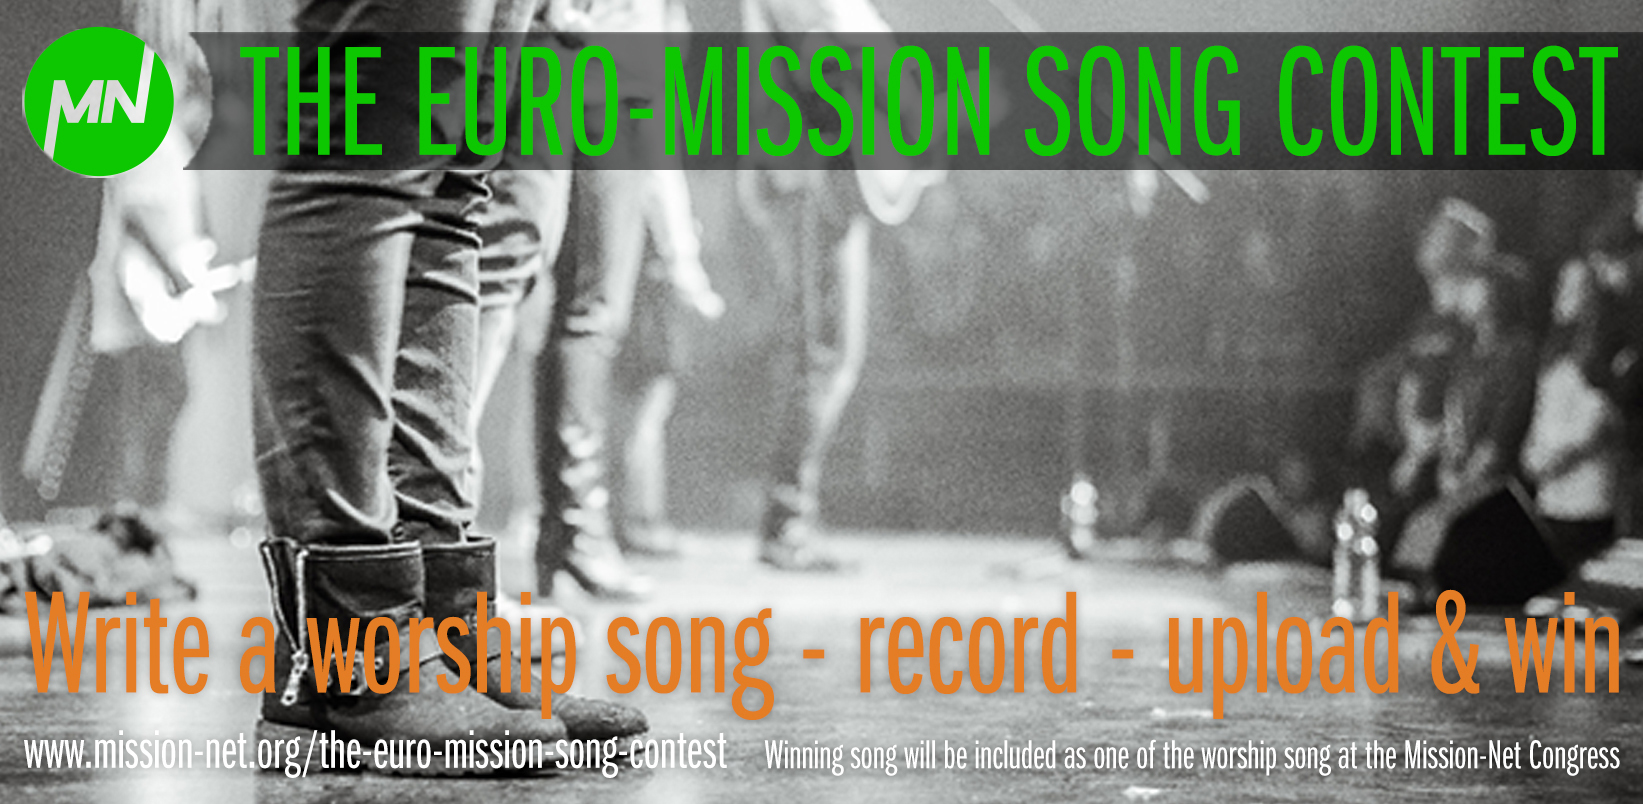 The Euro-Mission Song Contest